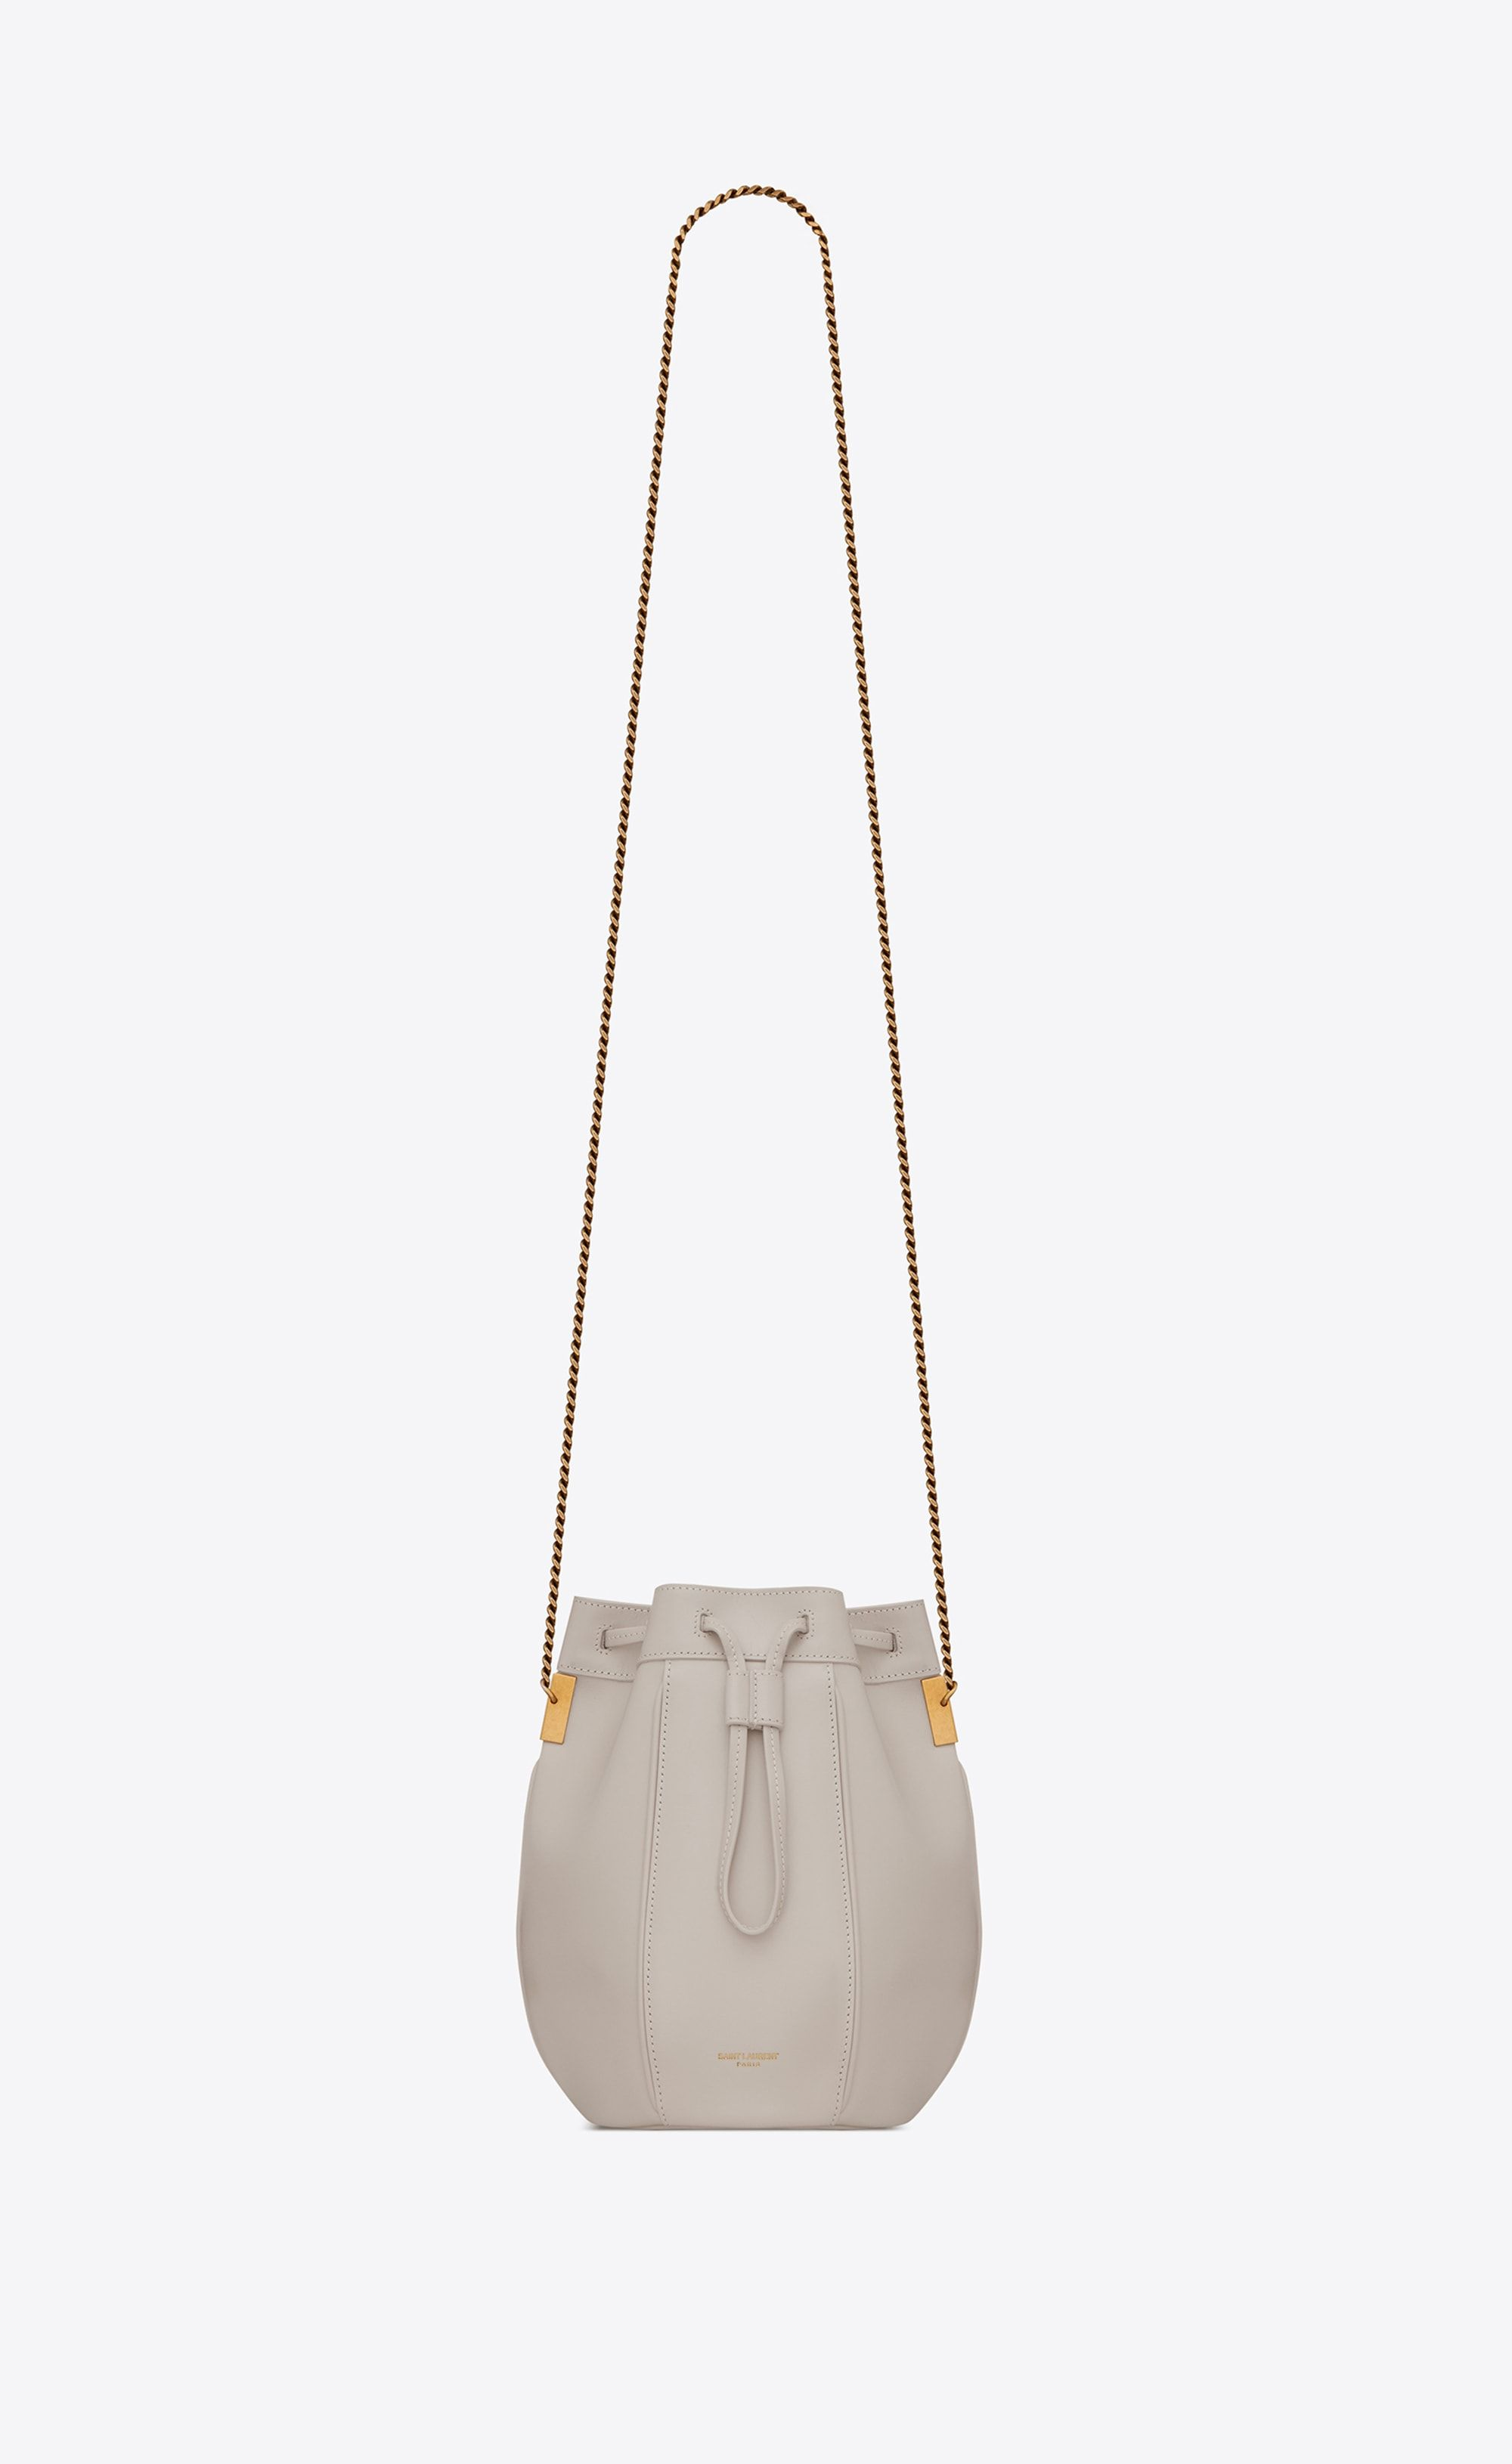 Saint Laurent TALITHA Small Bucket Bag In Smooth Leather  ef1051be7e5a0